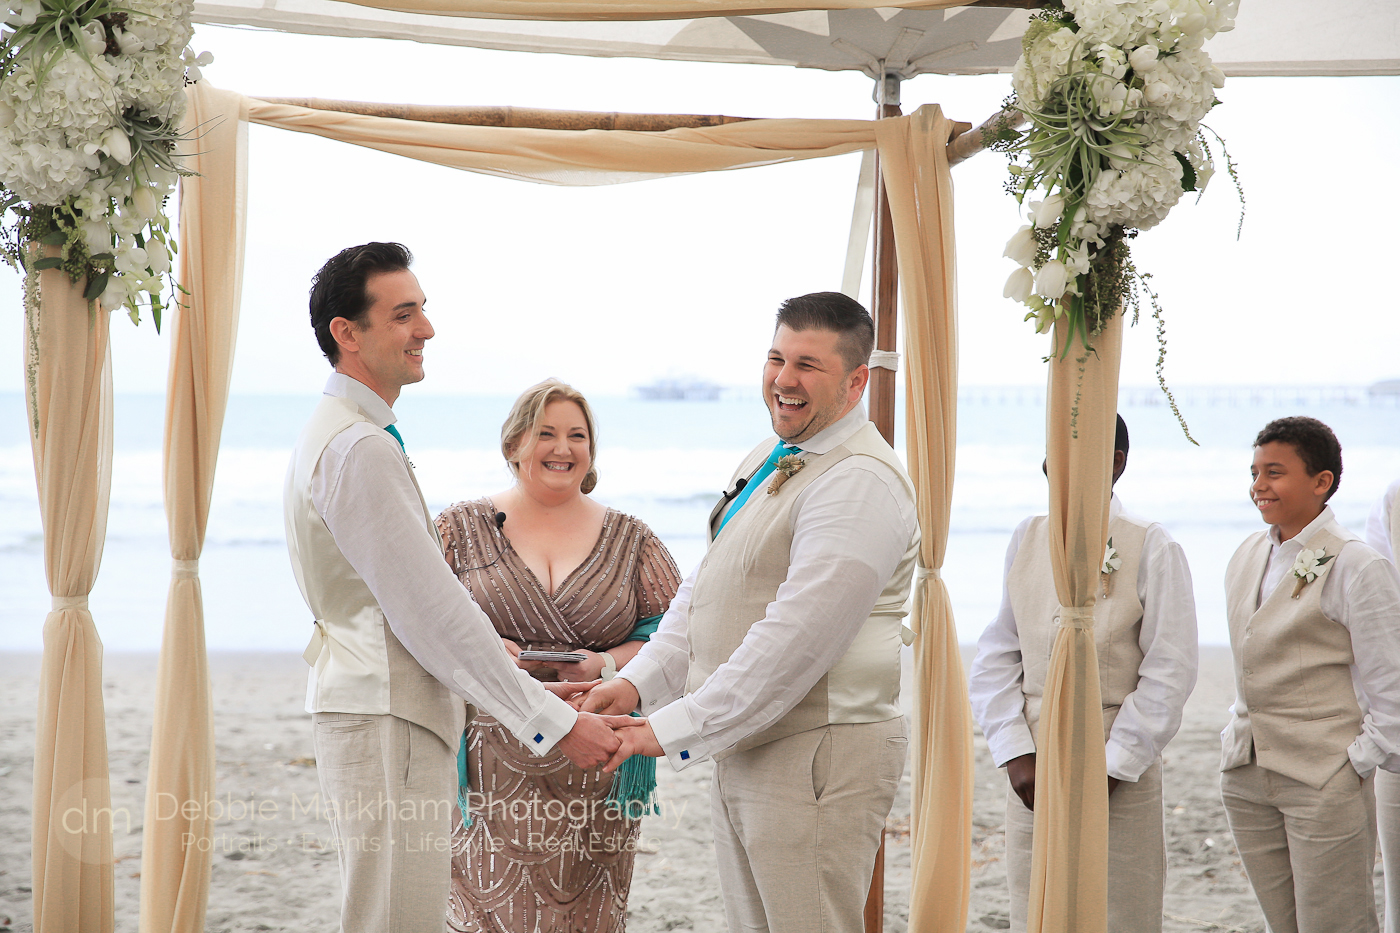 Two Men_wedding_Beach_LGBT_Same-Sex_Gay Wedding_Photographer